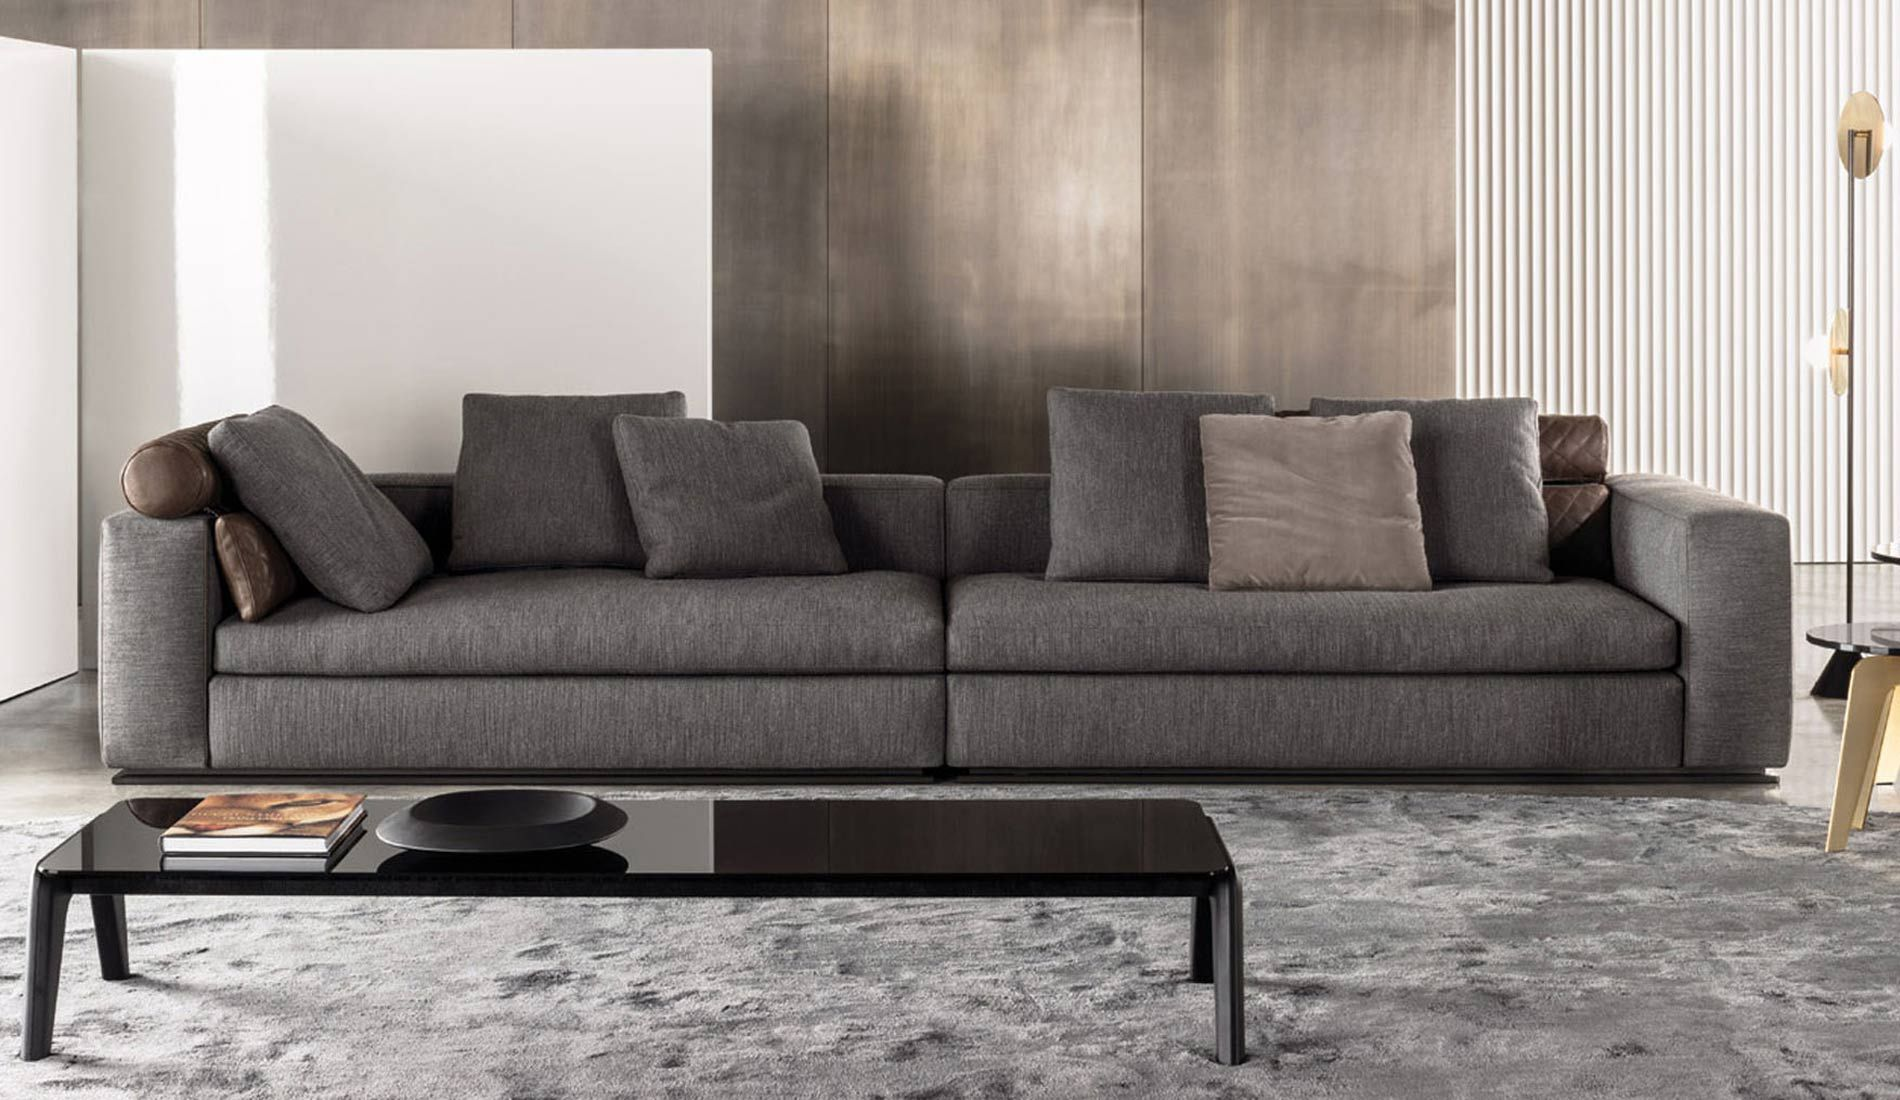 Full Size of Minotti Sofa Alexander Outlet Bed Dimensions Sleeper Indiana Leonard 368x105xh86 1xleft 1xright Fabric Rattan Günstiges Xxl Günstig Grau Federkern Big Sofa Minotti Sofa